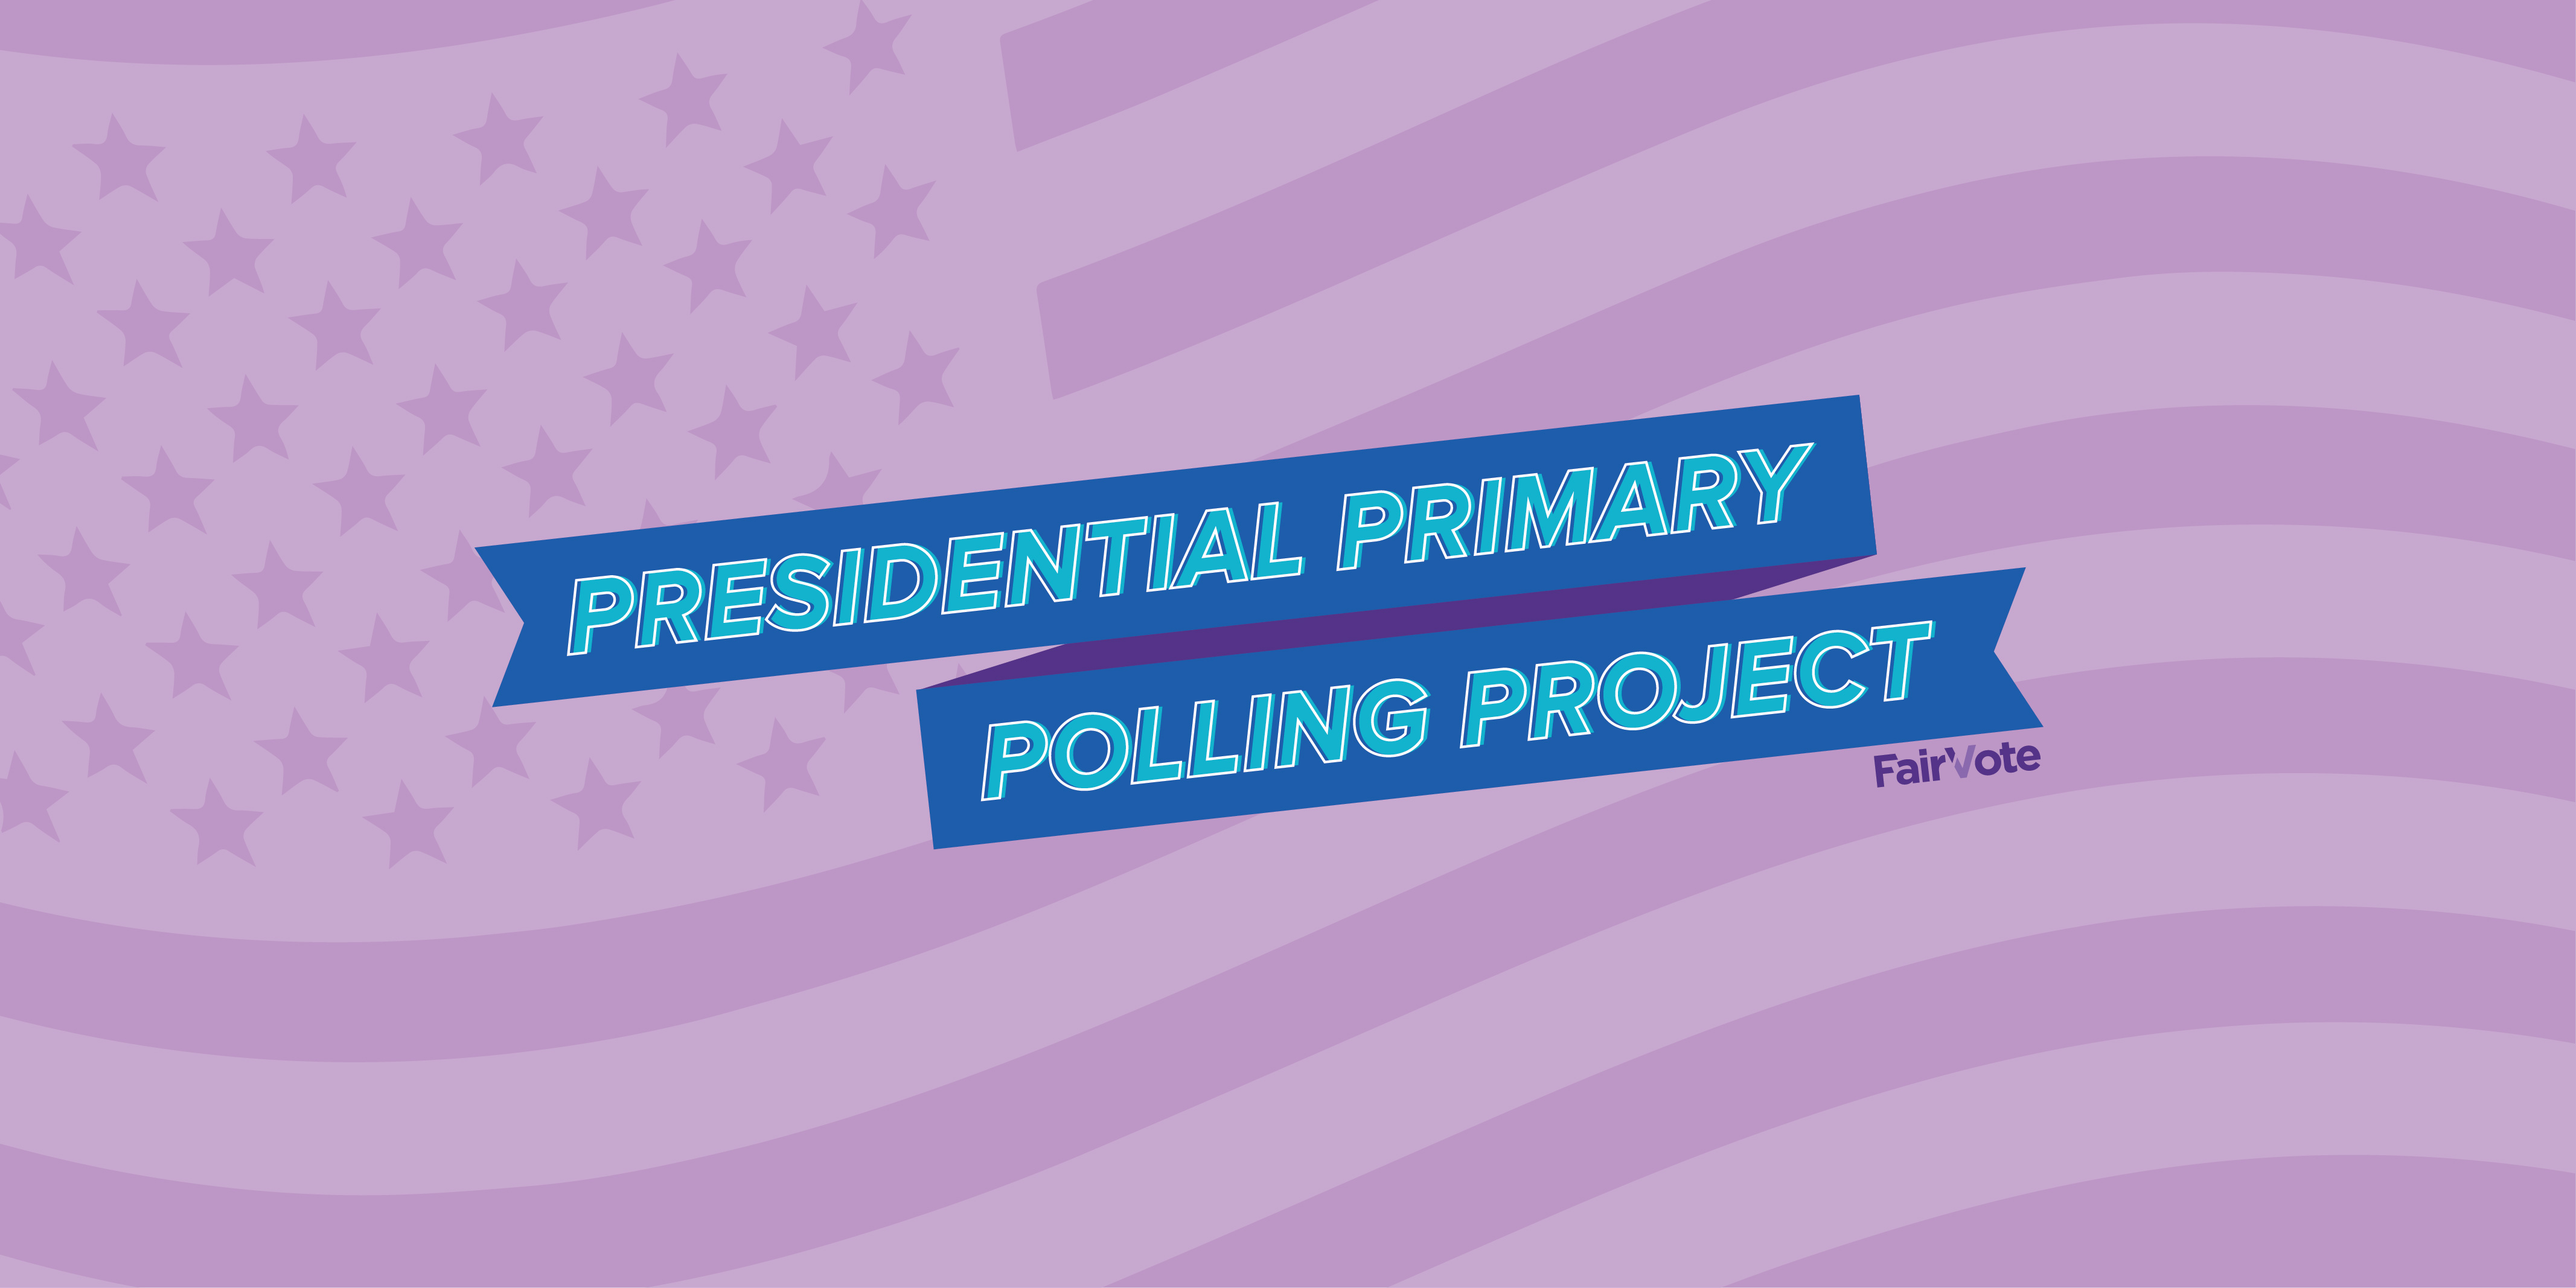 Presidential Primary Polling Project